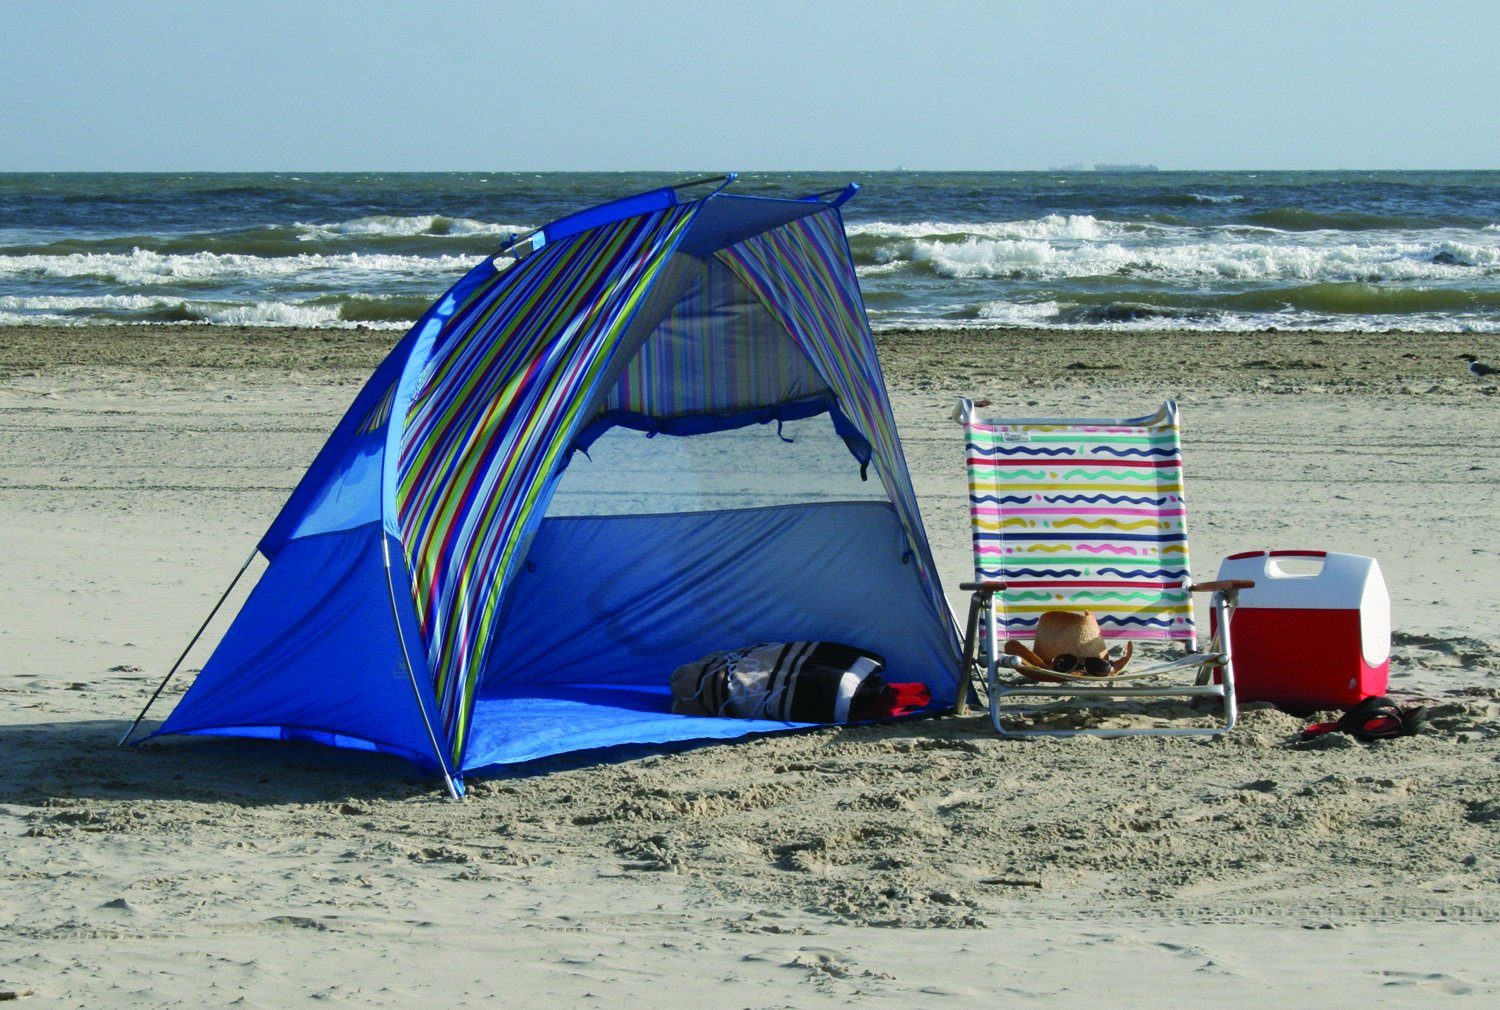 Amazon.com Texsport Calypso Quick Cabana Beach Sun Shelter Canopy Sports u0026 Outdoors : beach tents amazon - memphite.com